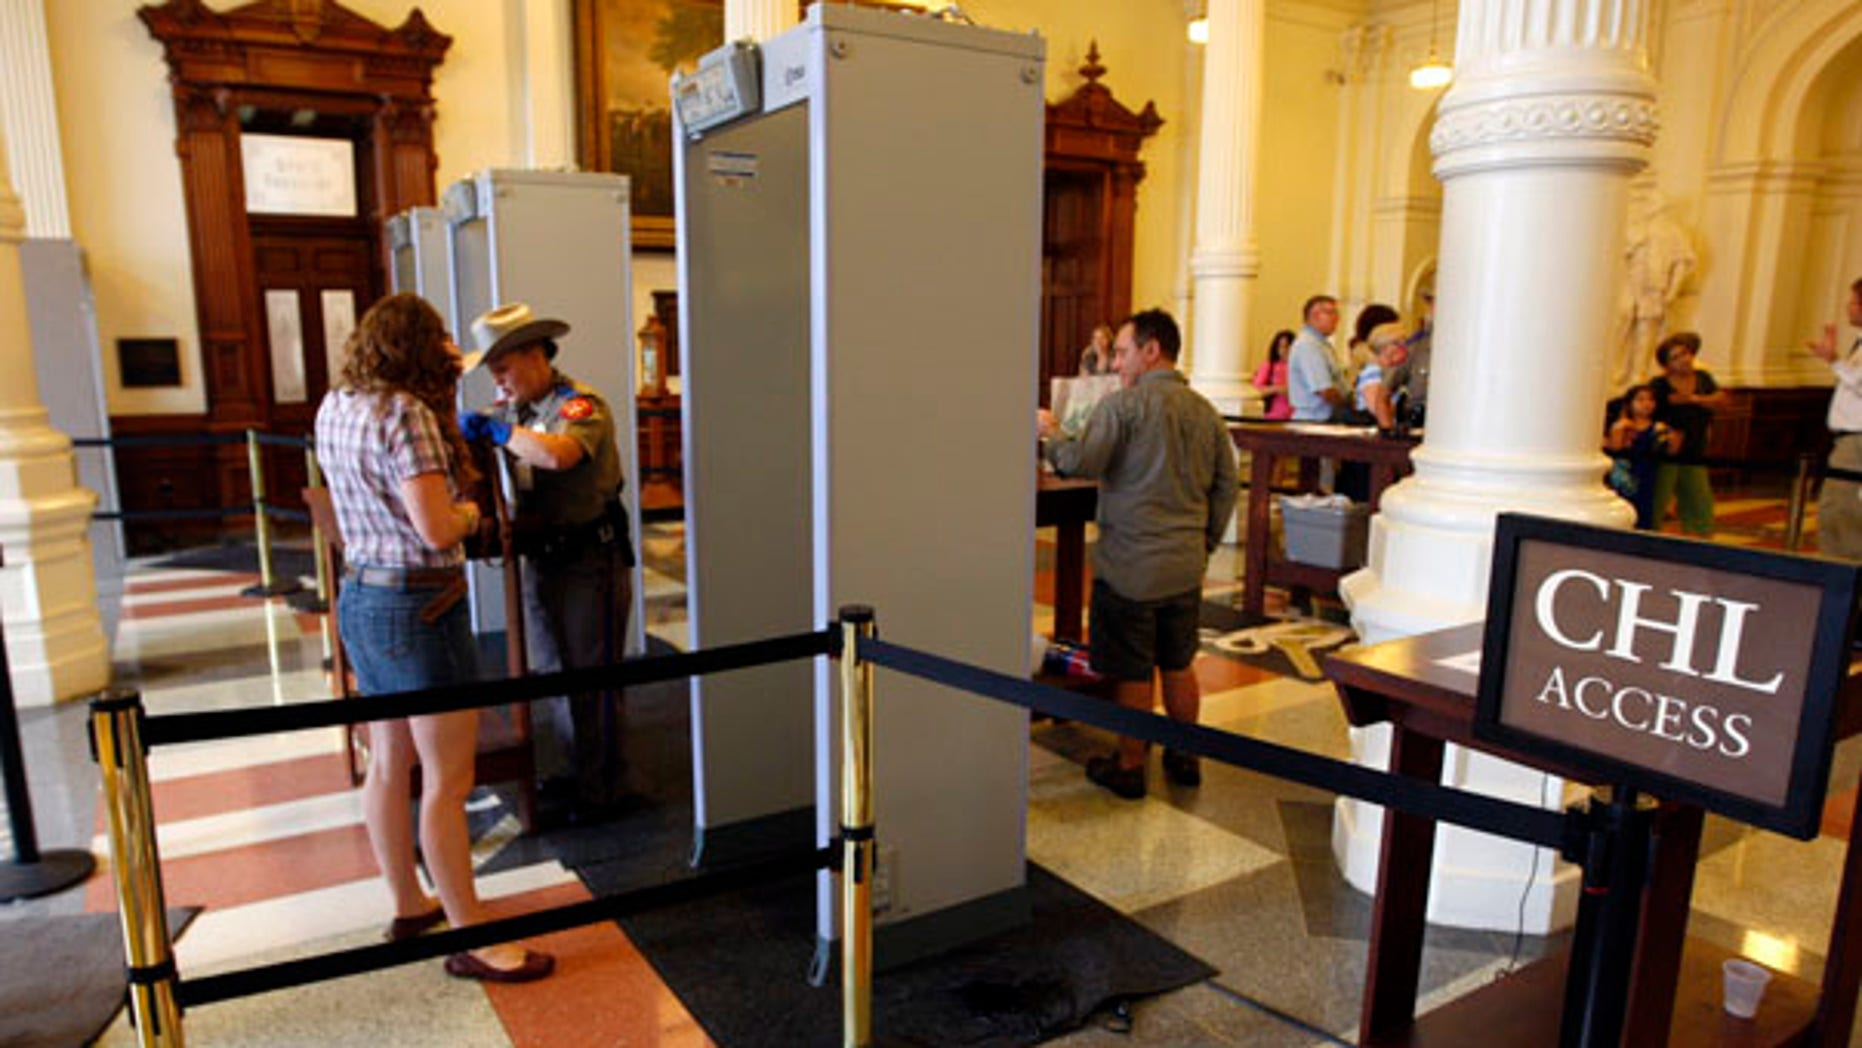 June 3: A sign offers an open lane for those with concealed handgun licenses (CHL) -- what many insiders consider an express pass gain access to the Texas Capitol in Austin.